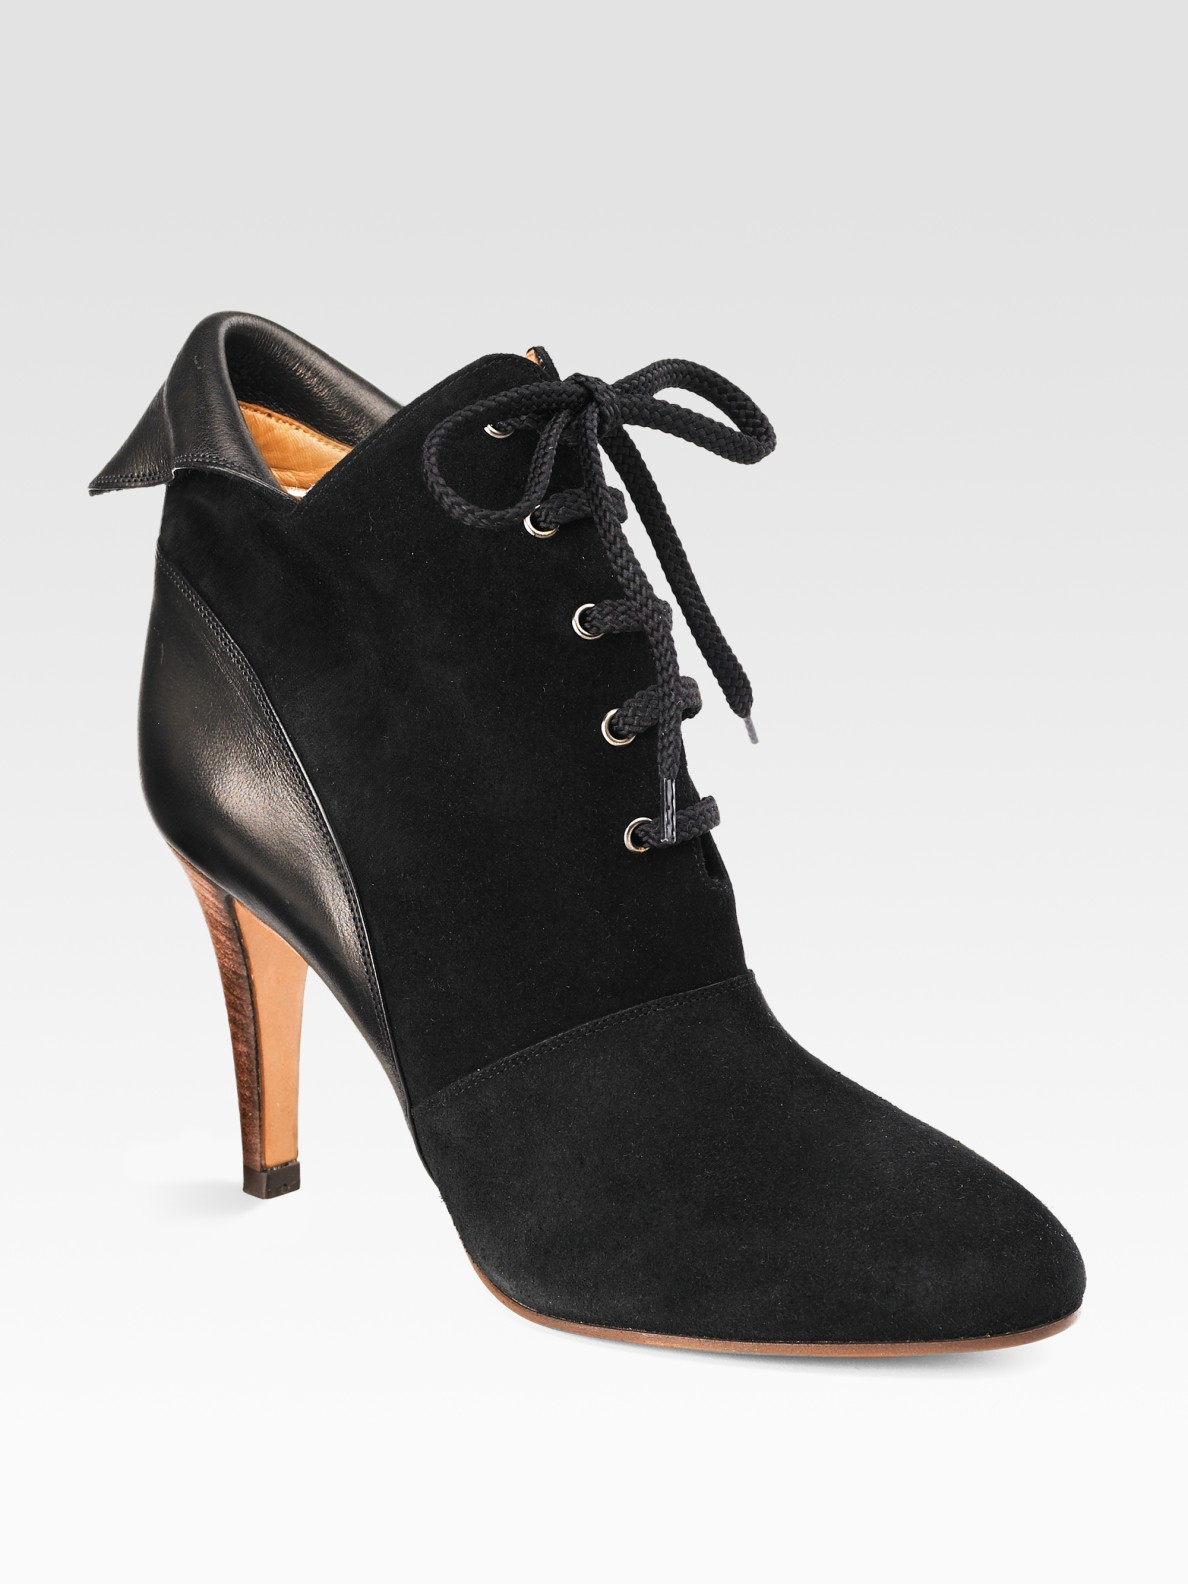 Chlo 233 Lace Up Suede Ankle Boots In Black Lyst